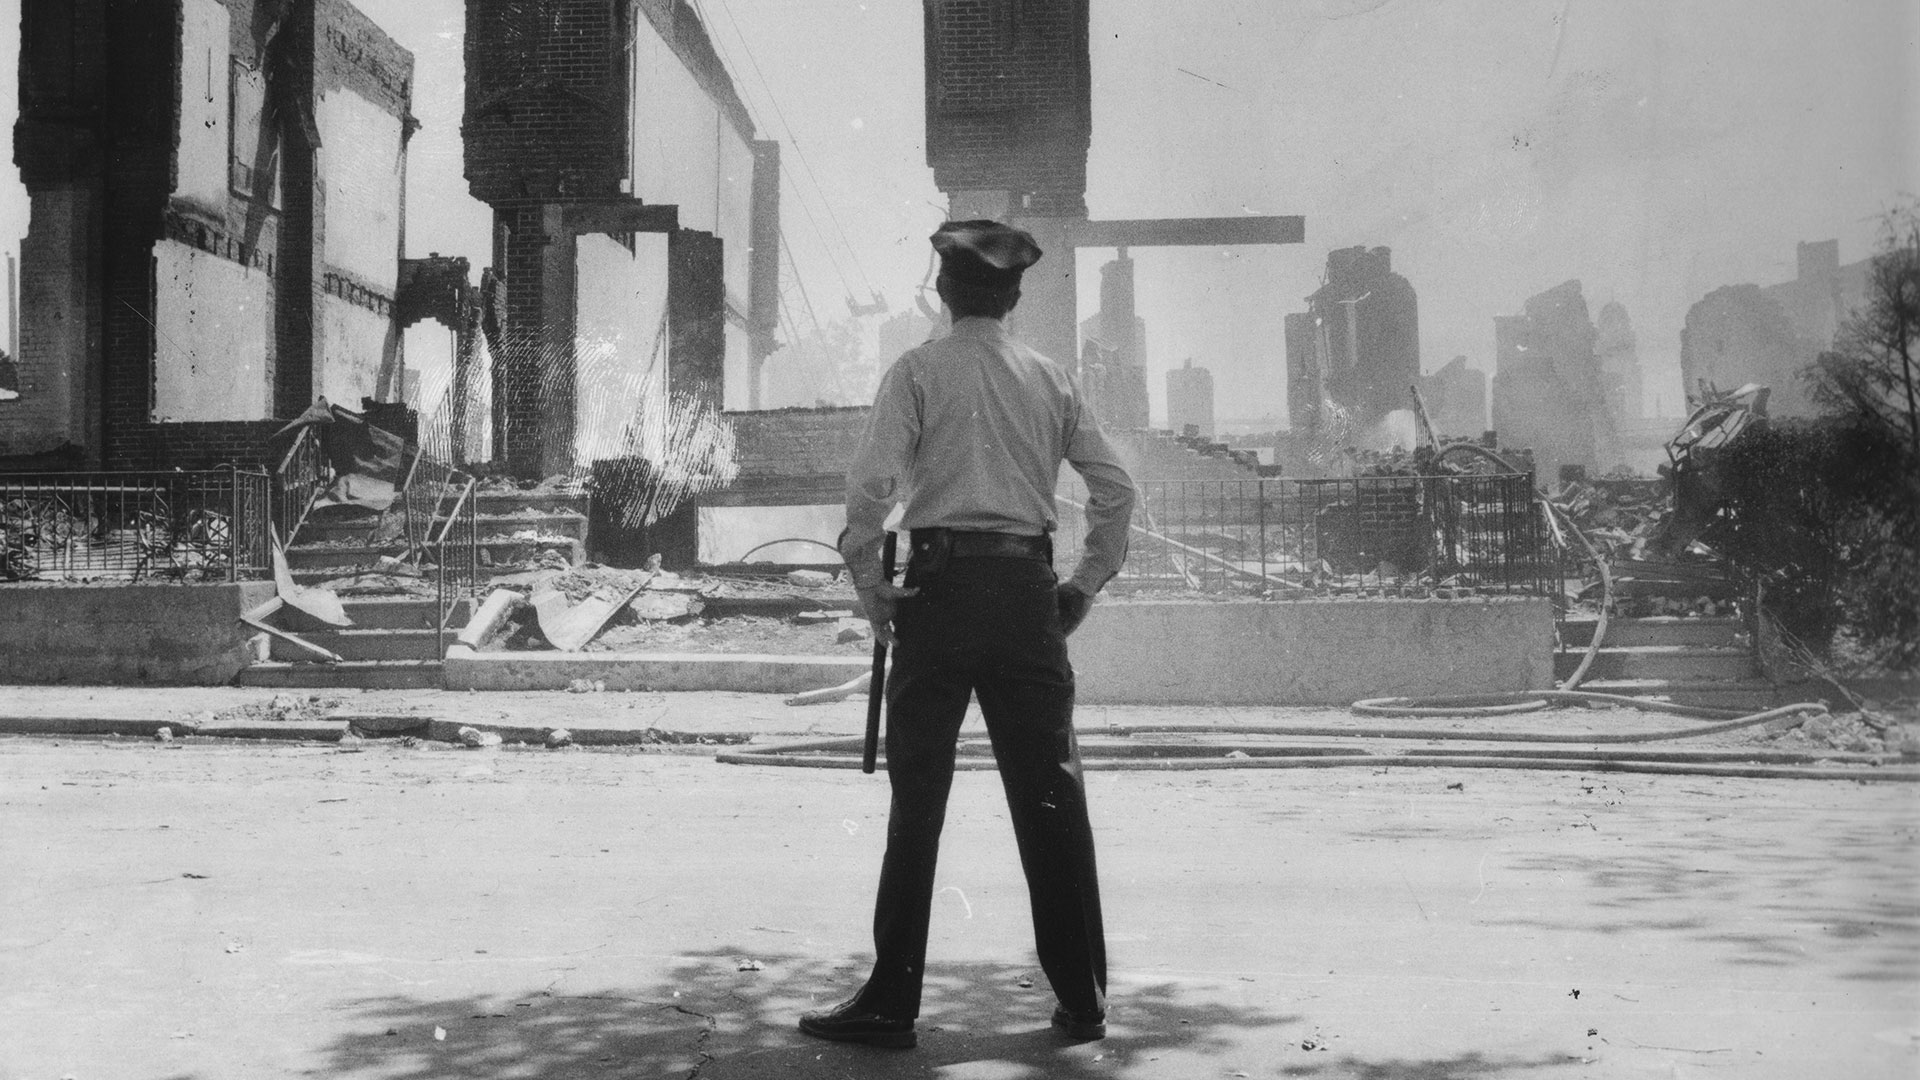 A Philadelphia police officer observes the rubble after the MOVE bombings